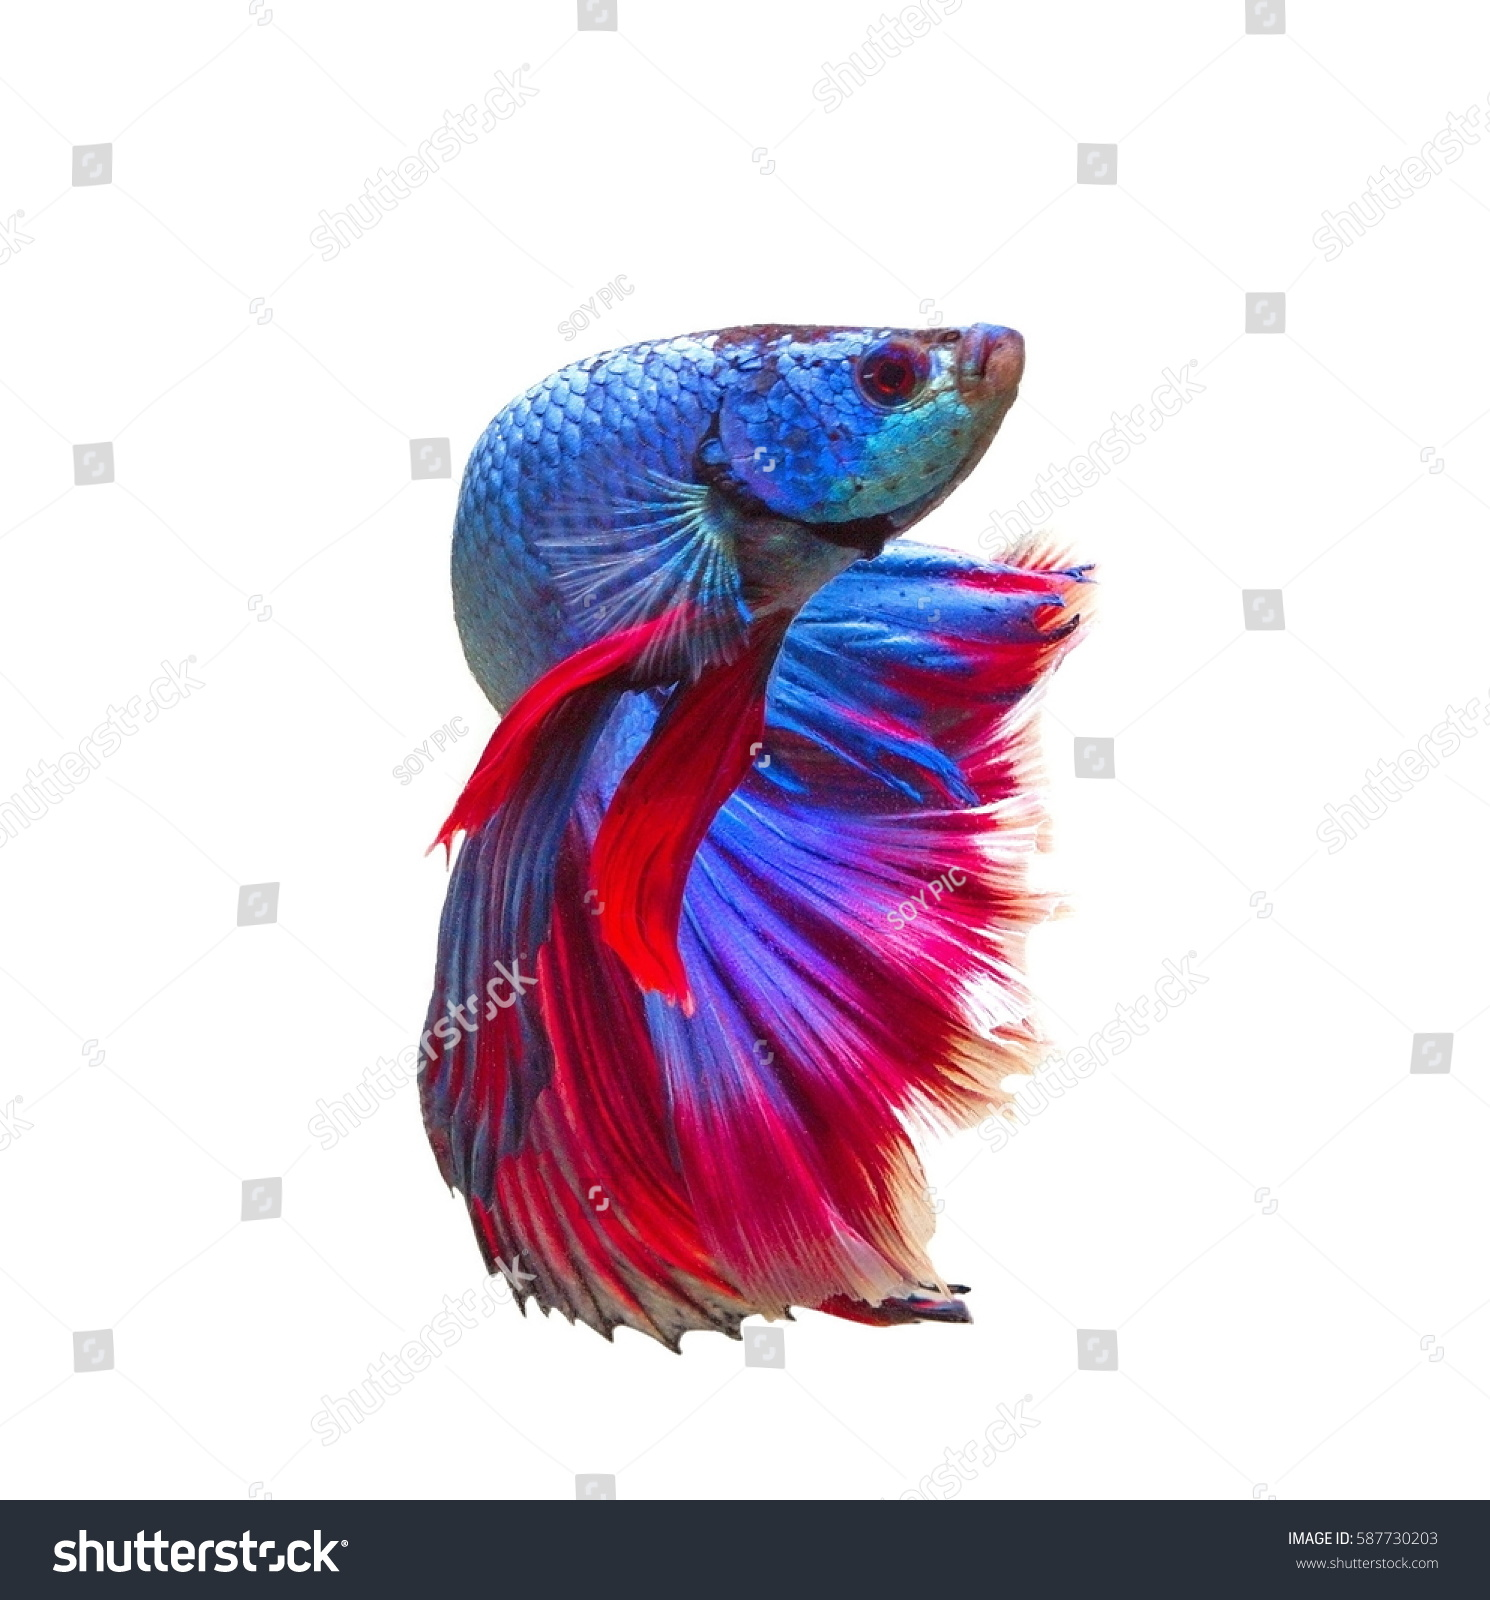 siamese fighting fish coloring pages - siamese fighting fish stock photo 587730203 shutterstock